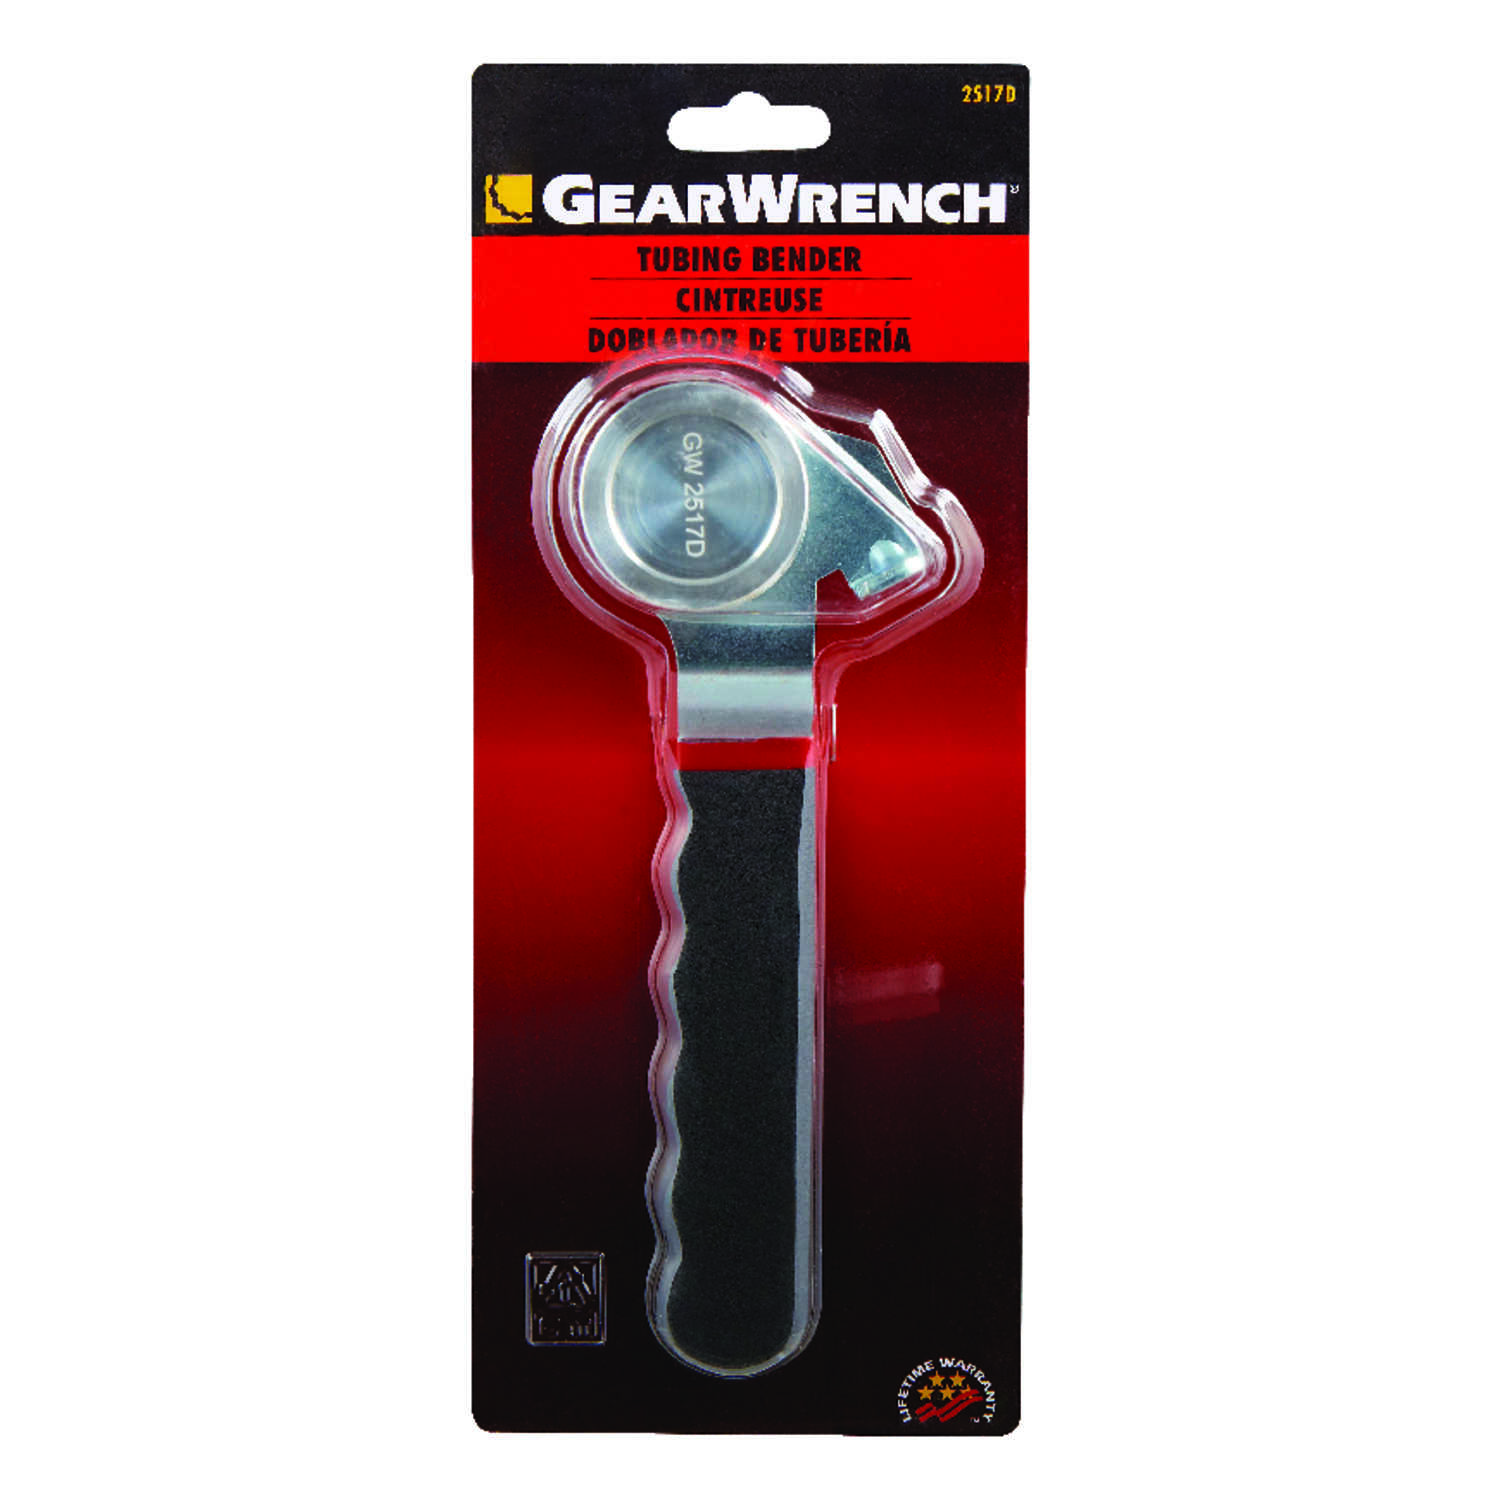 GearWrench  1 pc. Tubing Bender